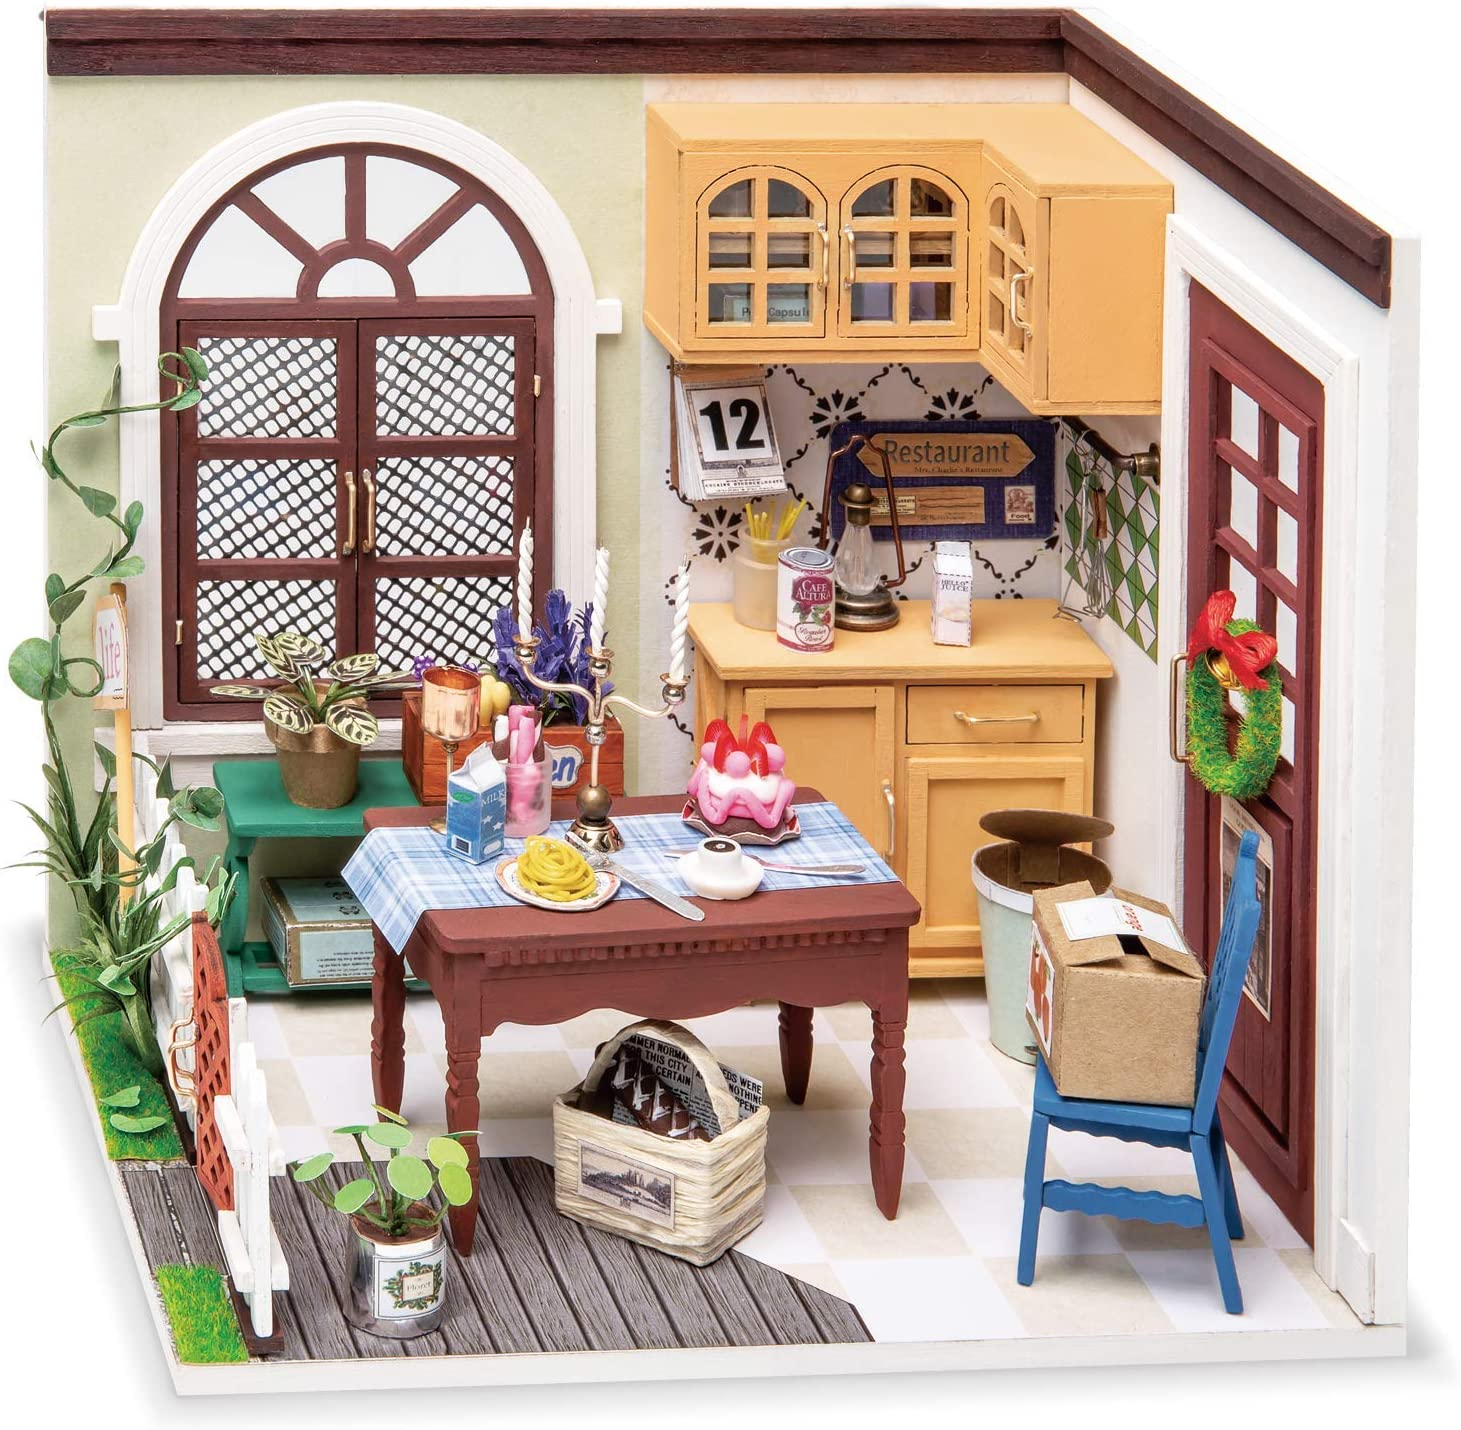 Robotime Tech Hobby Craft Kit 1:24 Miniature House Model with Furniture and Accessories Craft Kit Bedroom Study Dining Room Model Kit Dining Room